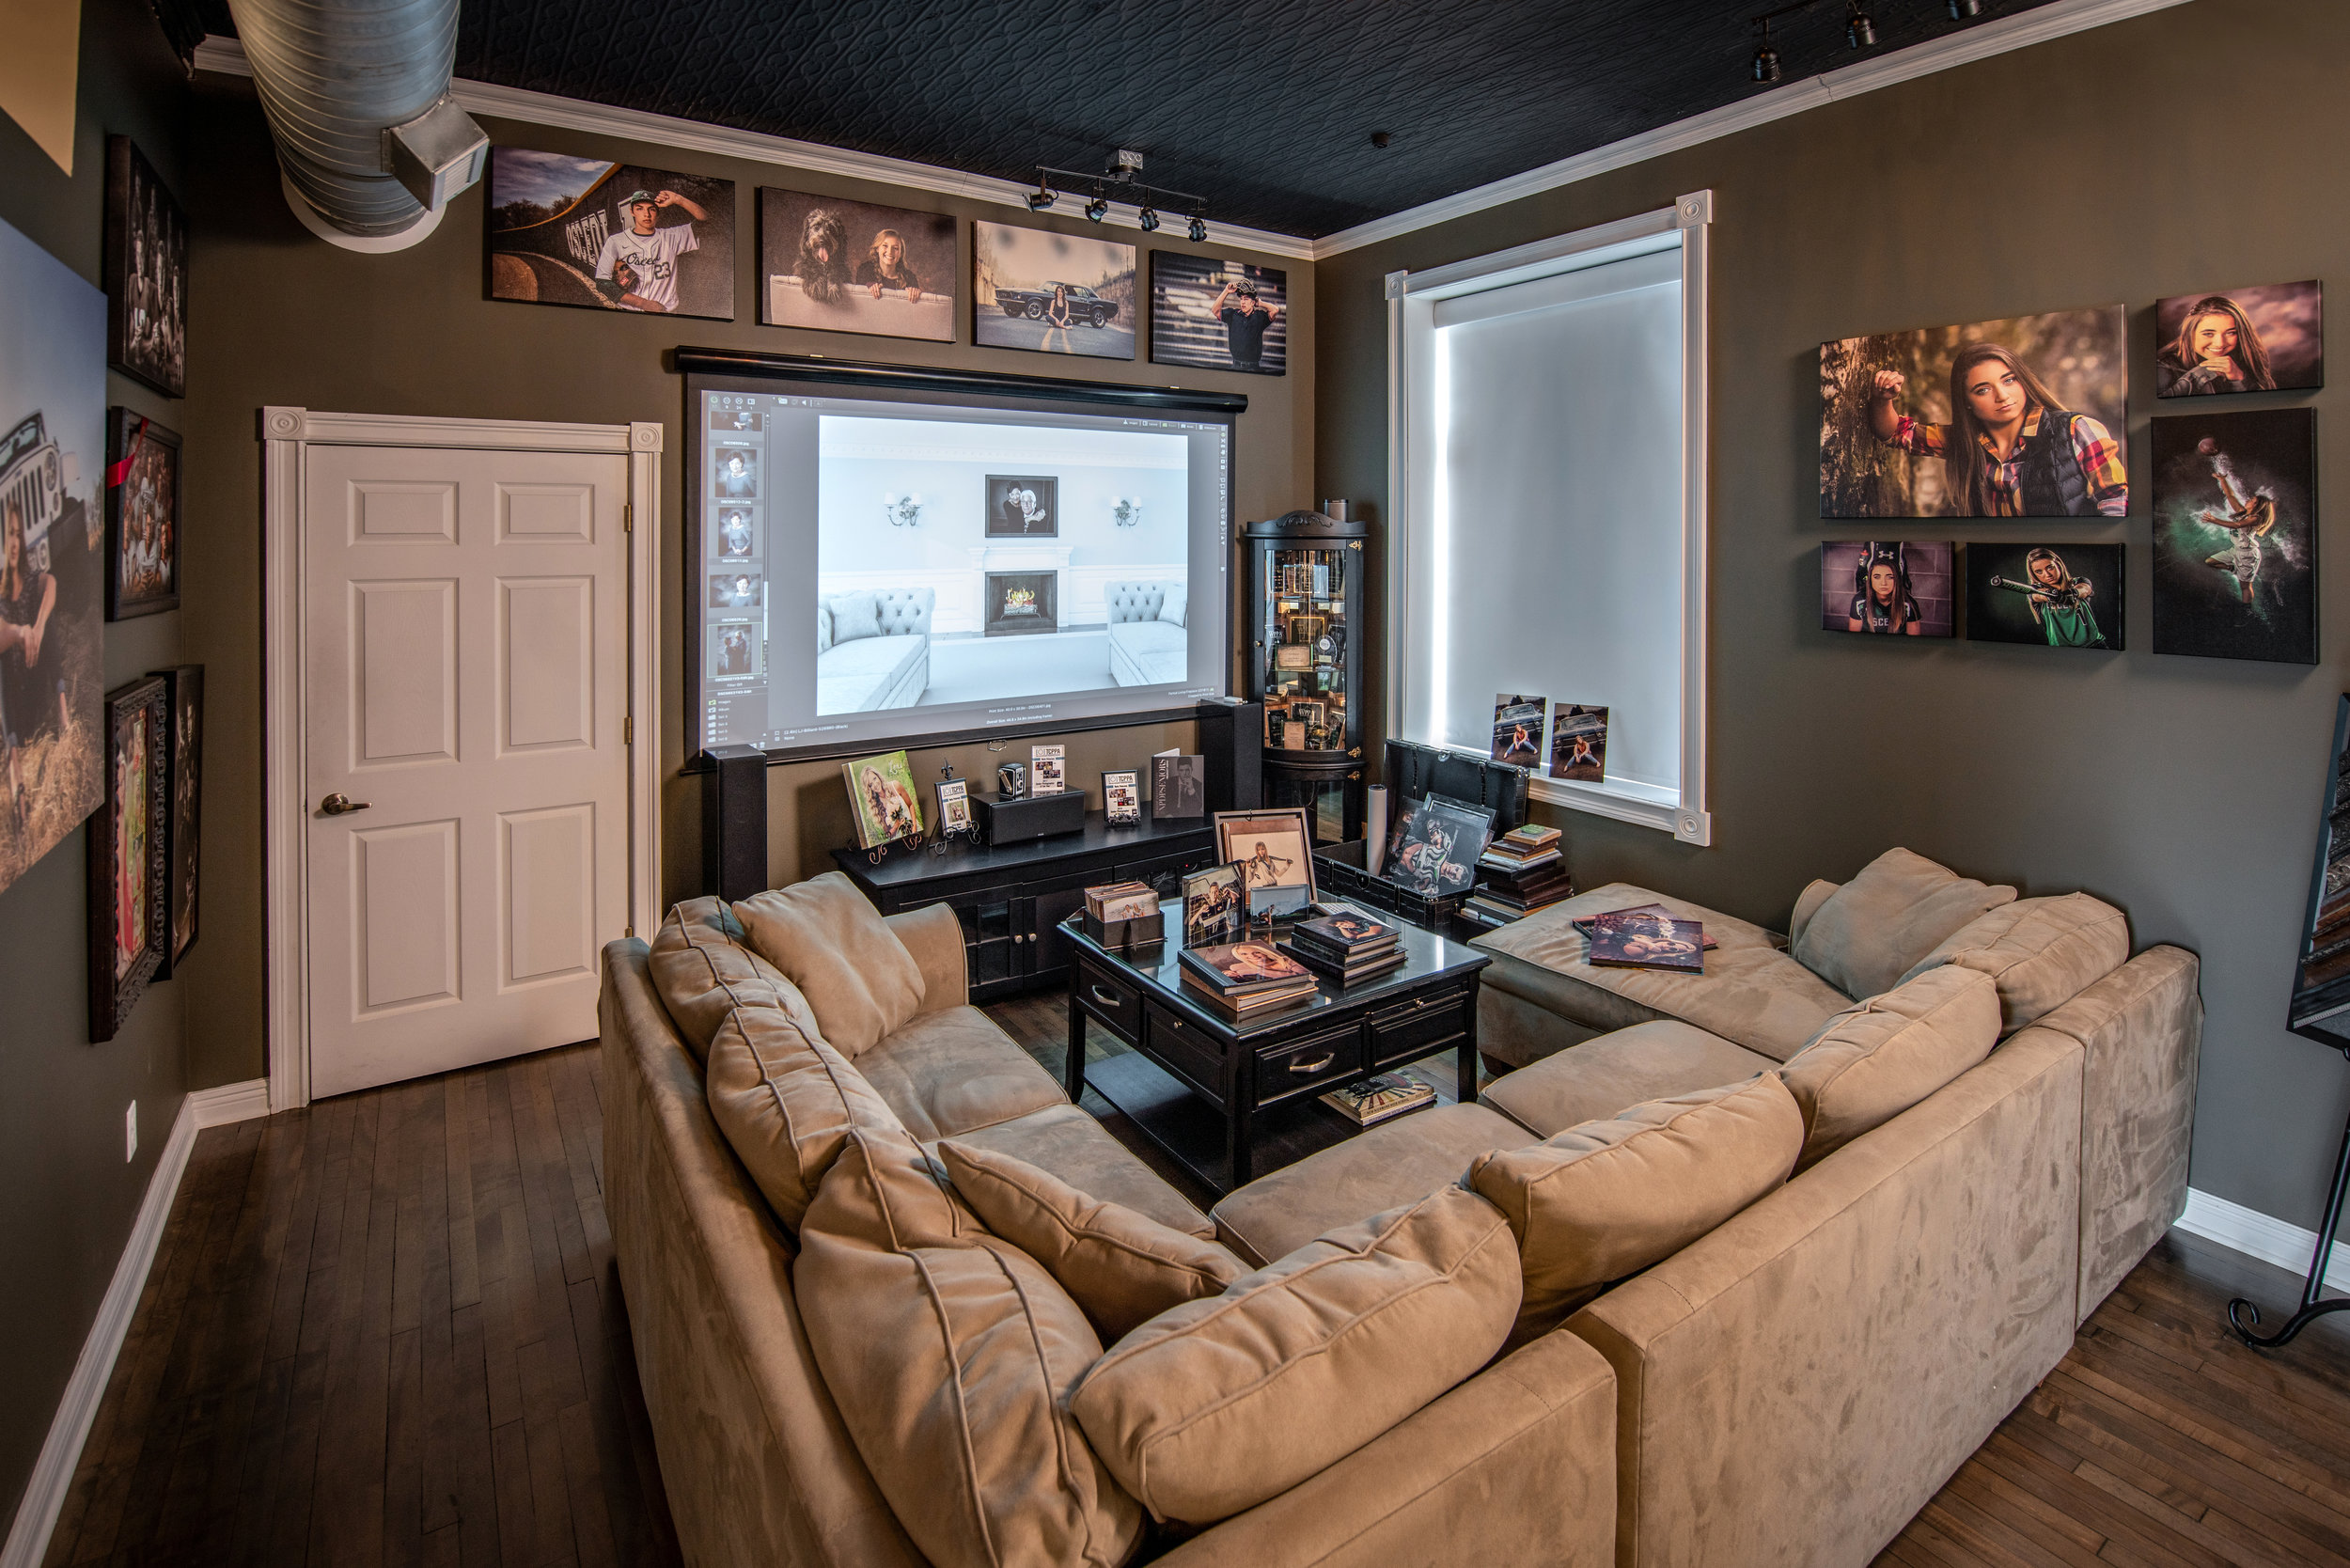 Our theatre-style showroom and consultation space.